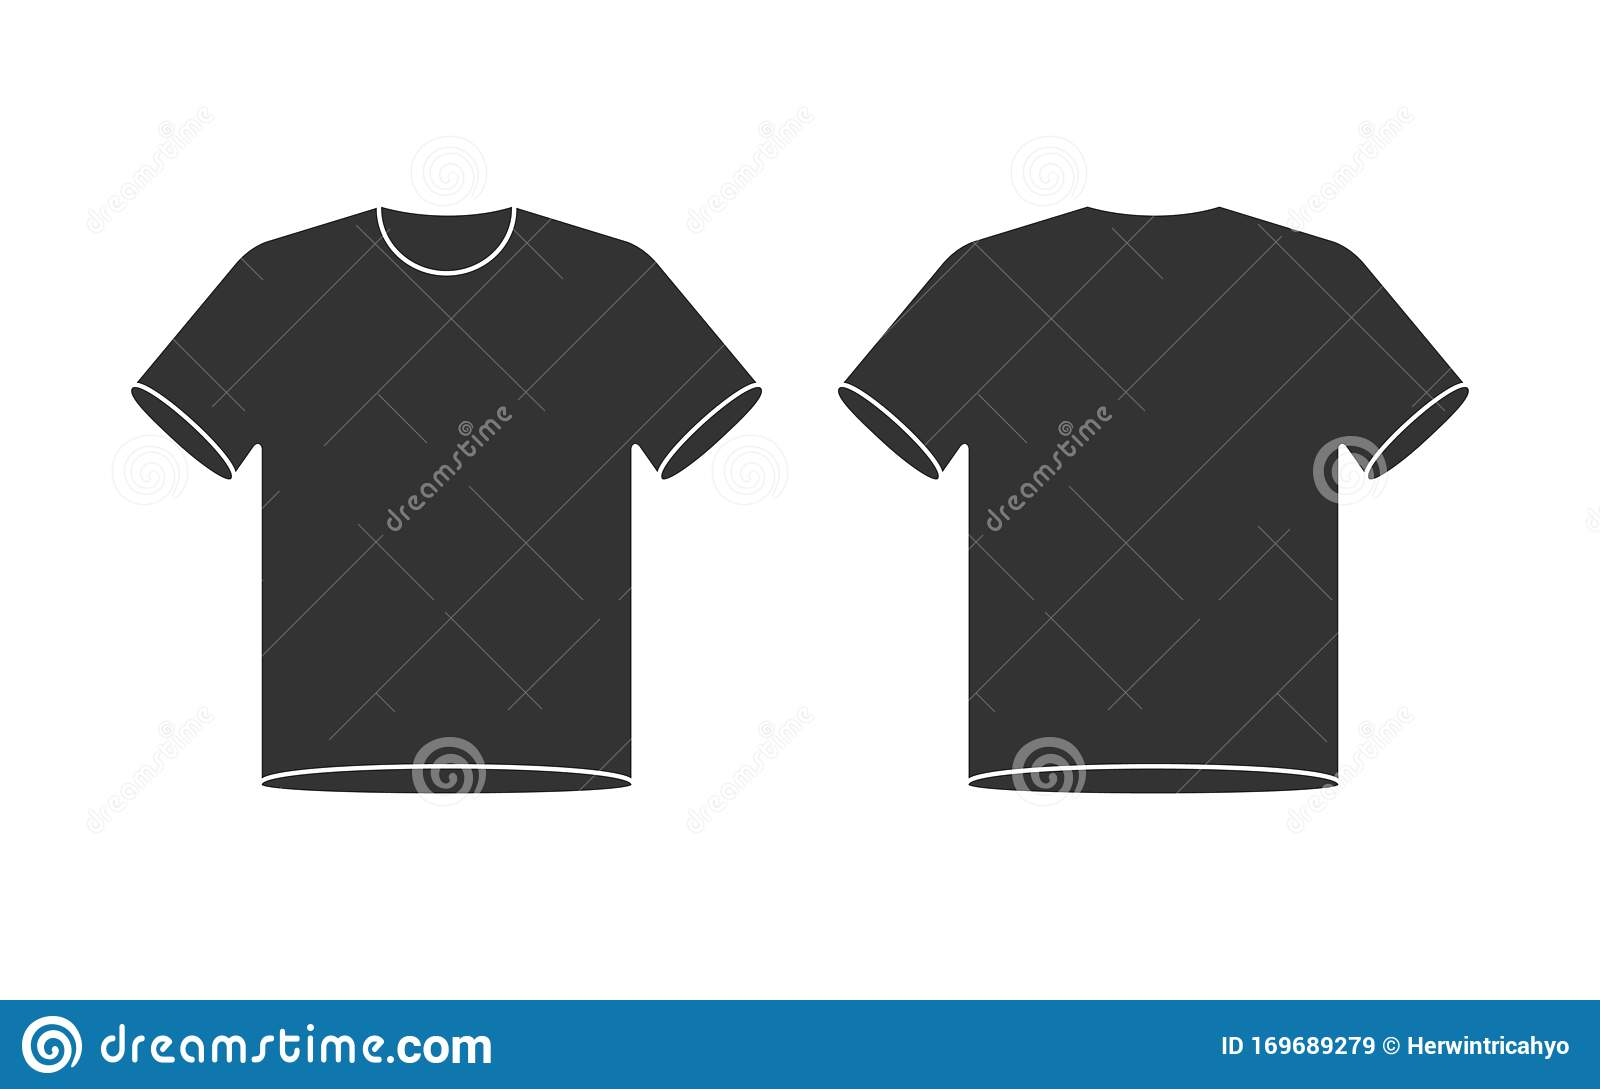 Blank T Shirt Mockup Front And Back View Shirt Template Black And White Vector Illustration Stock Vector Illustration Of Shop Blank 169689279